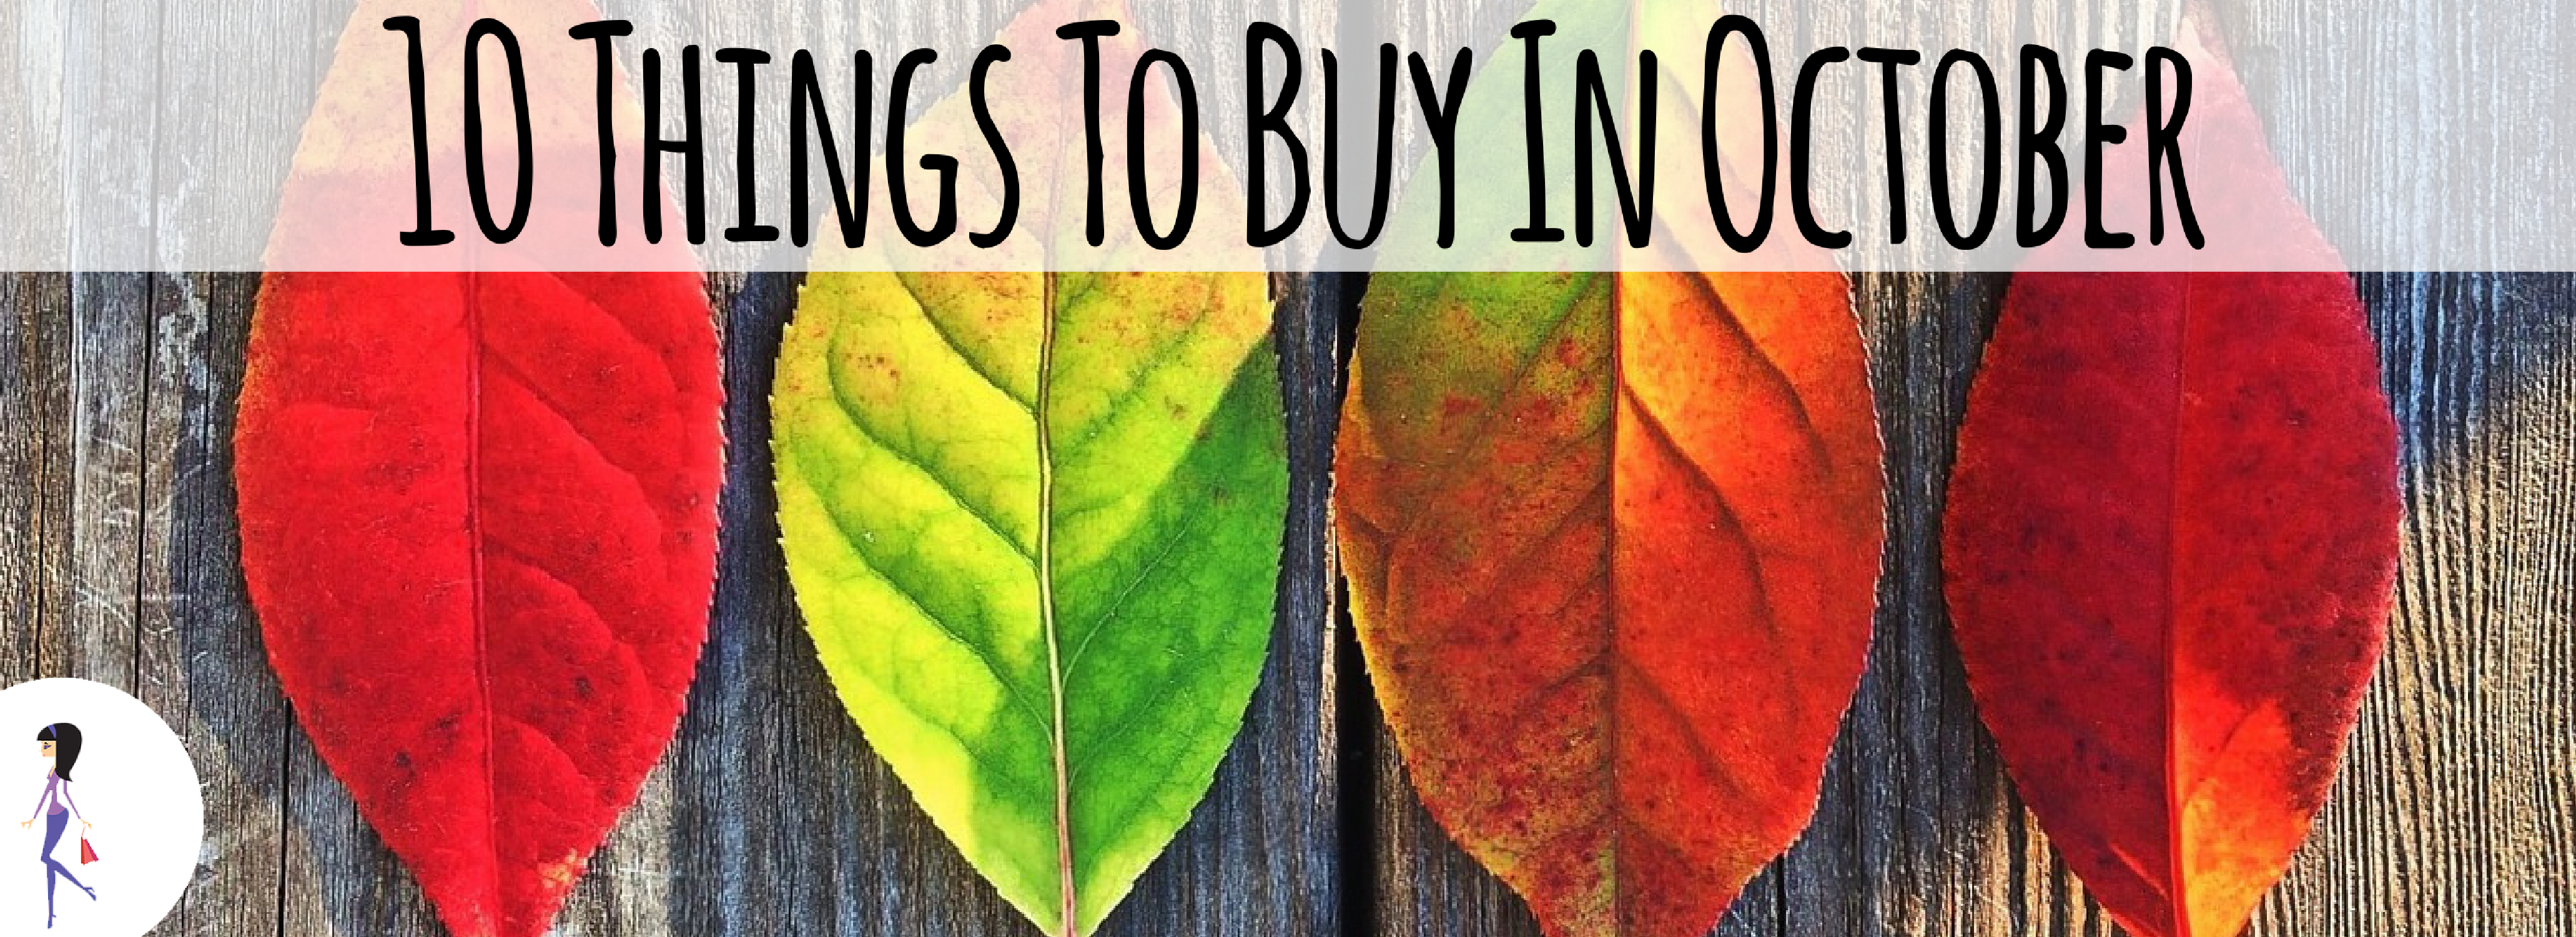 10 Things To Buy In October